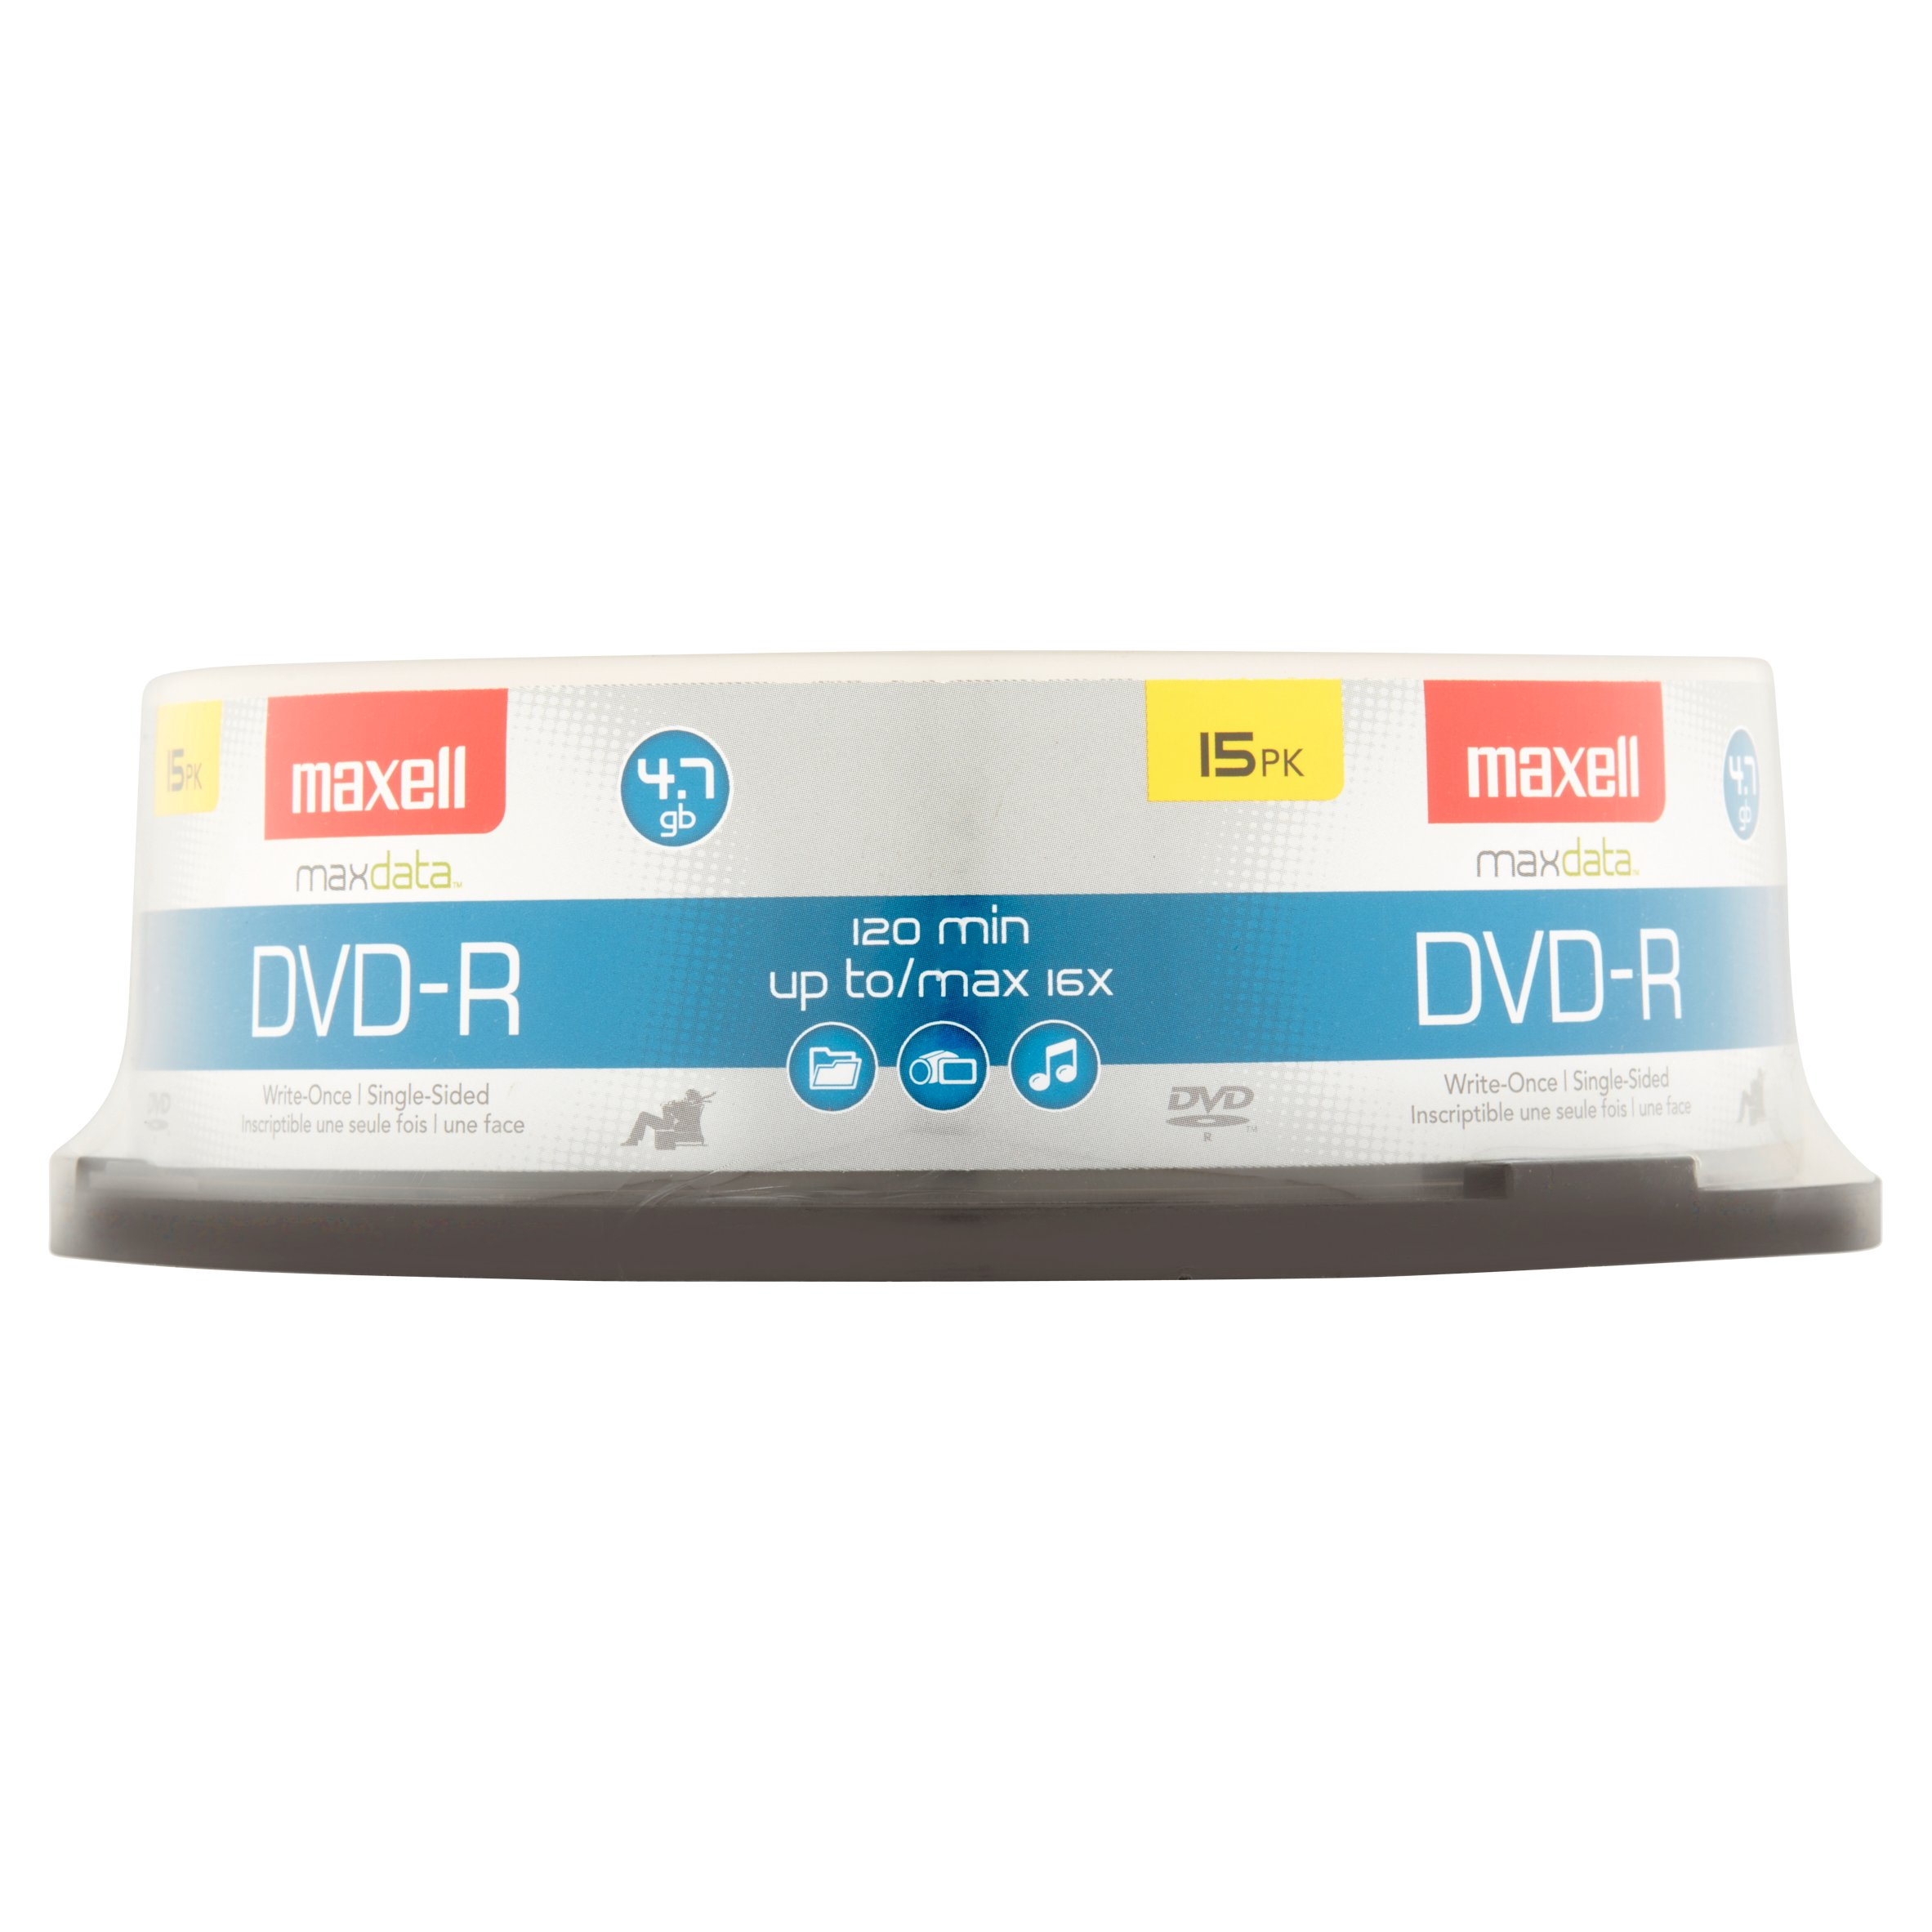 Maxell - 15 x DVD-R - 4.7 GB 16x - spindle